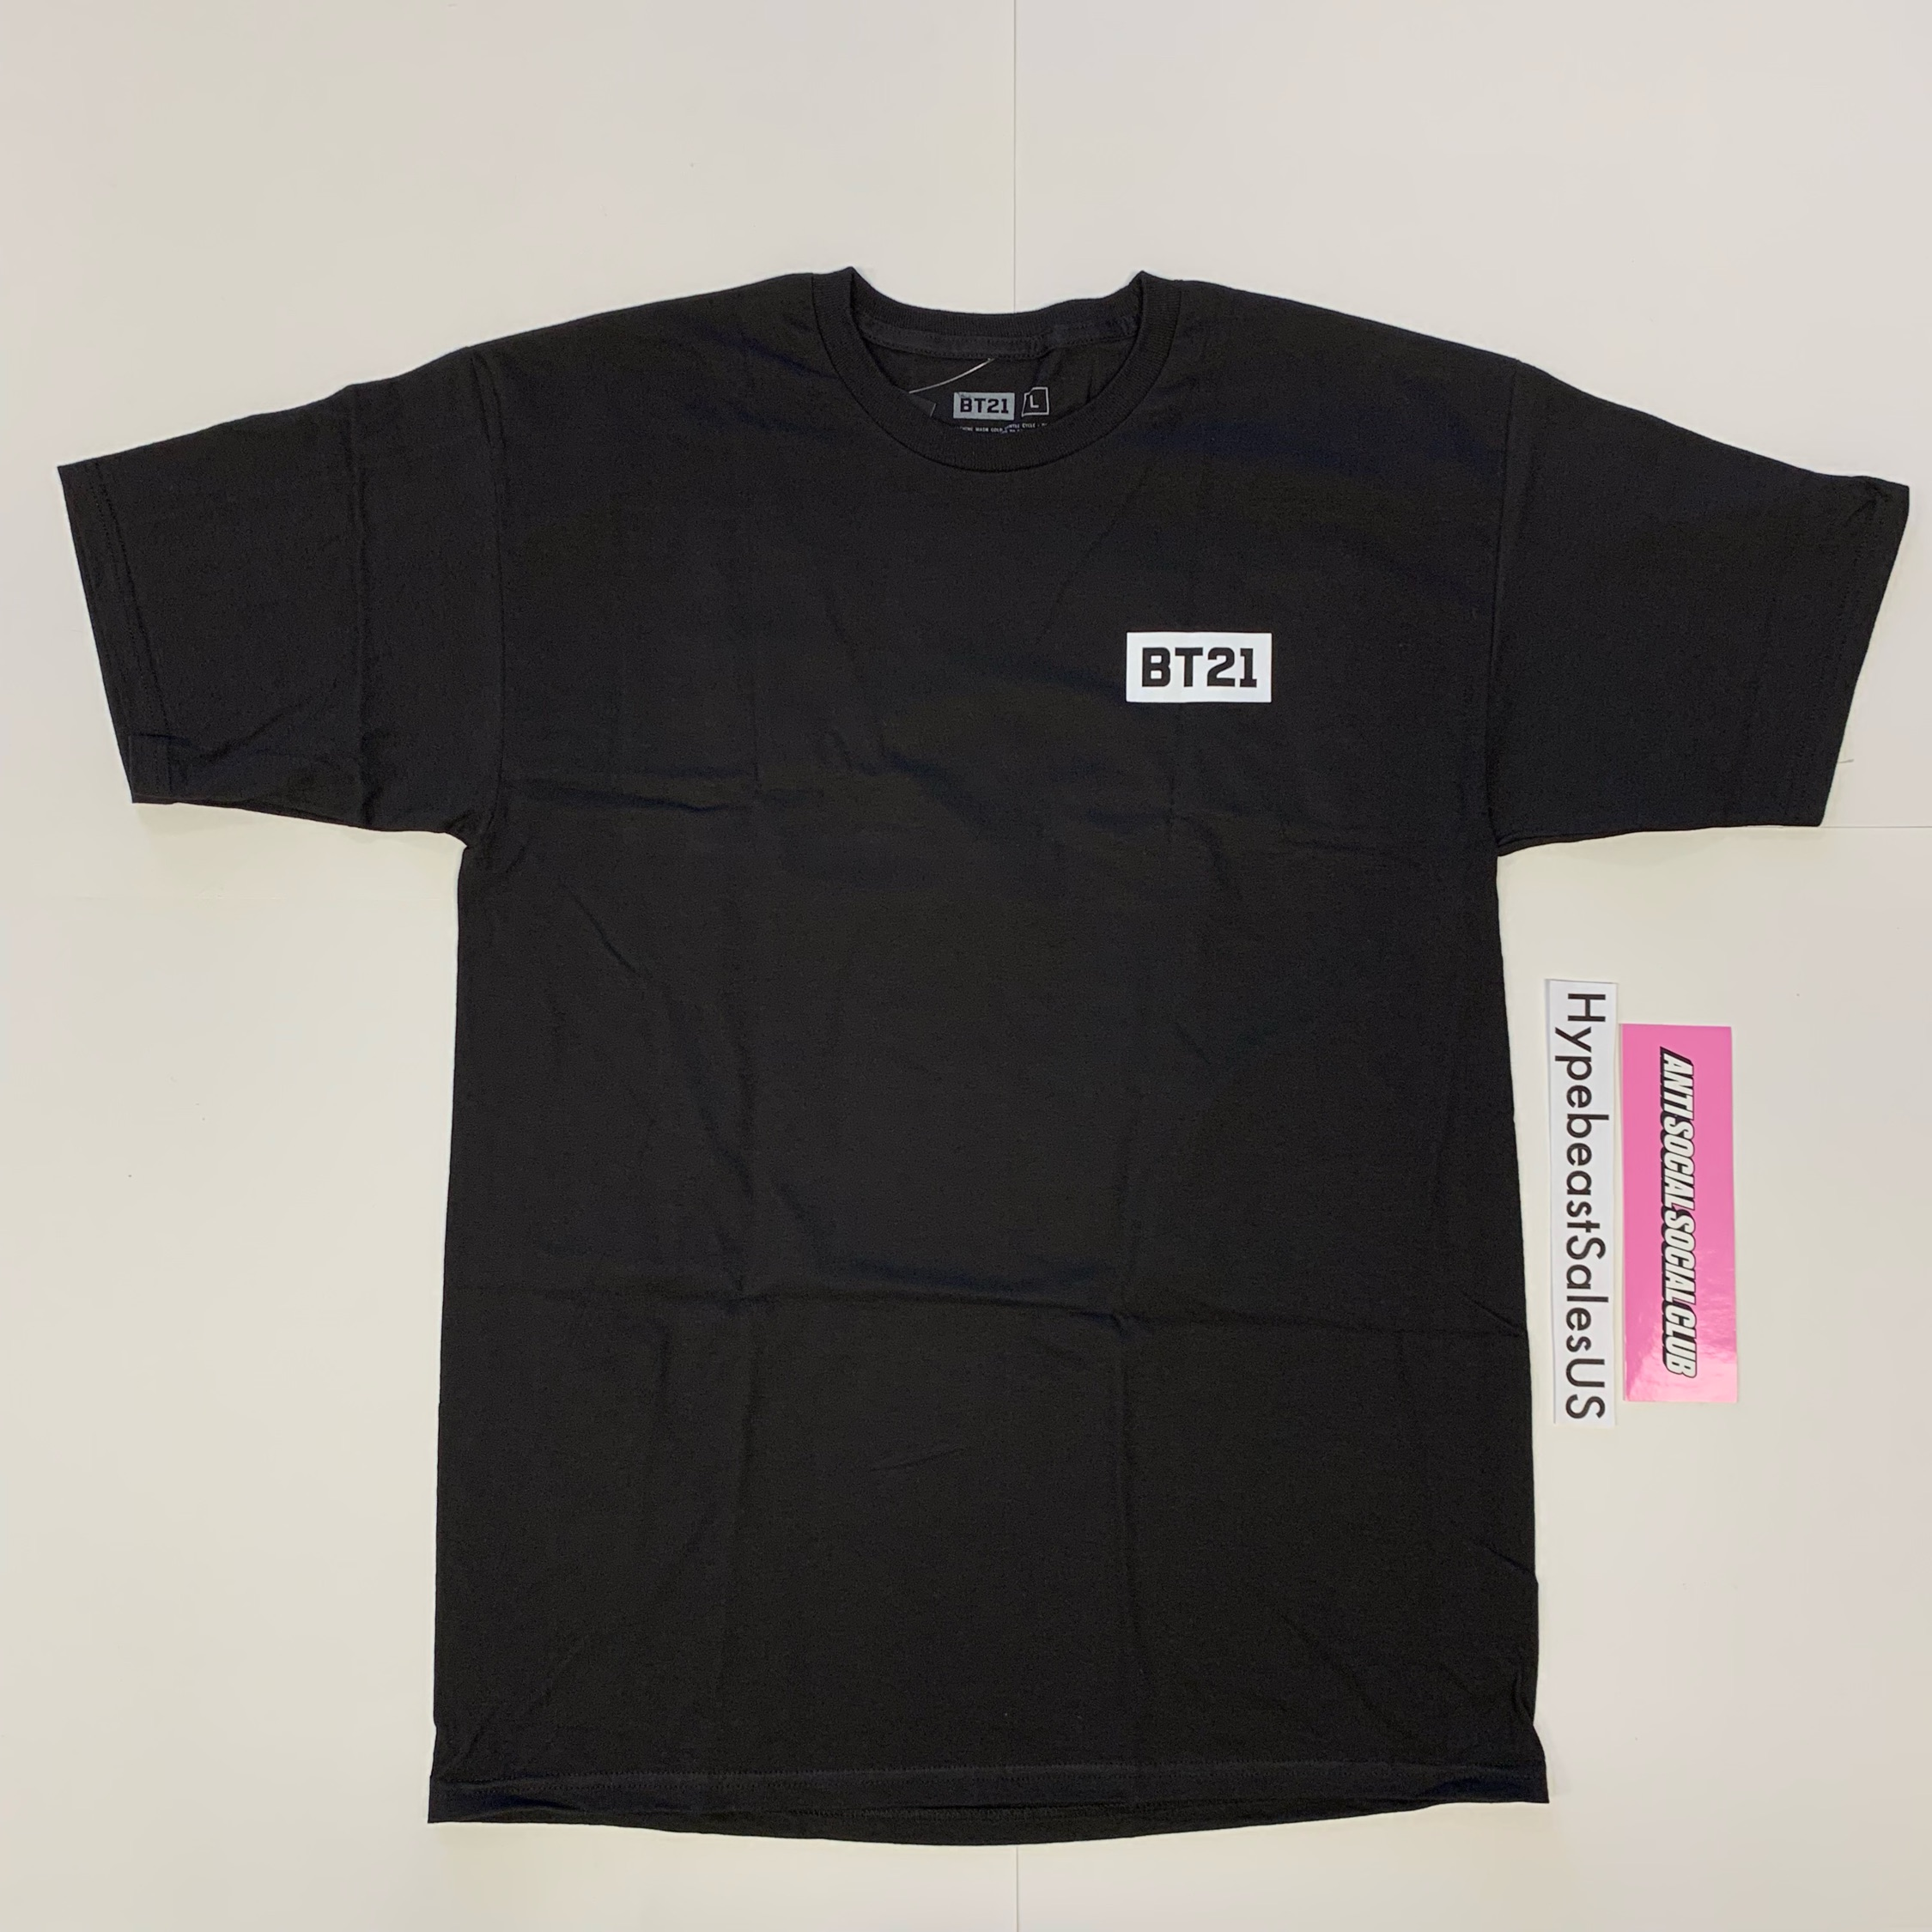 020be5b5ef40 Exclusive Antisocial Assc X Undefeated Paranoid L